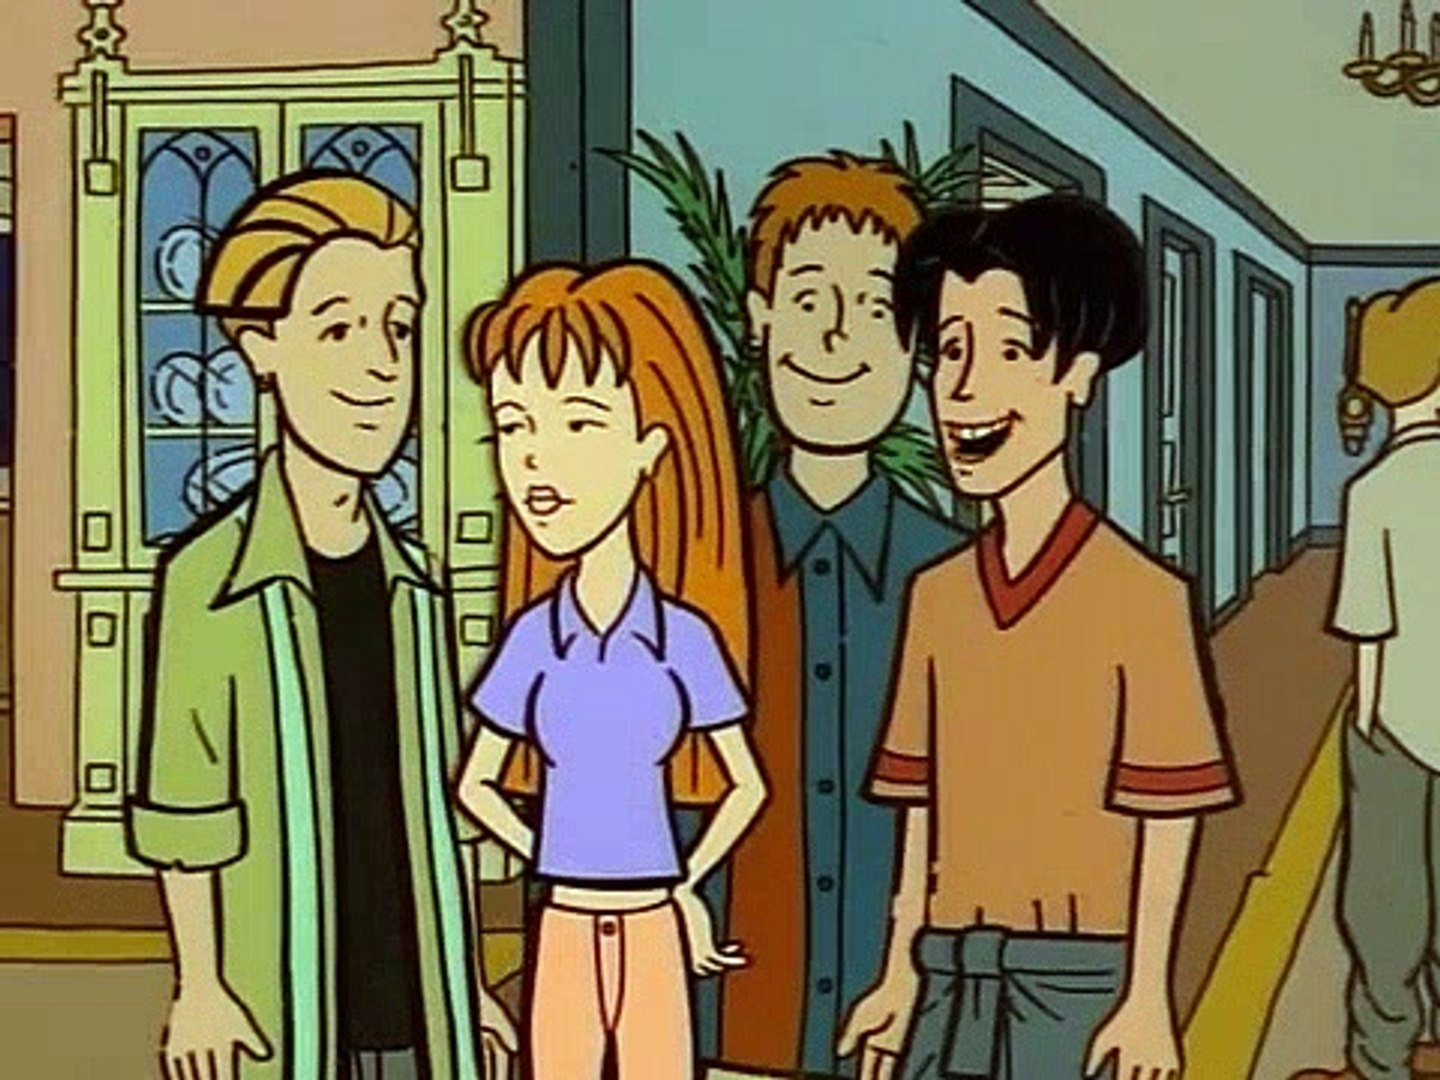 Daria S01e02 The Invitation